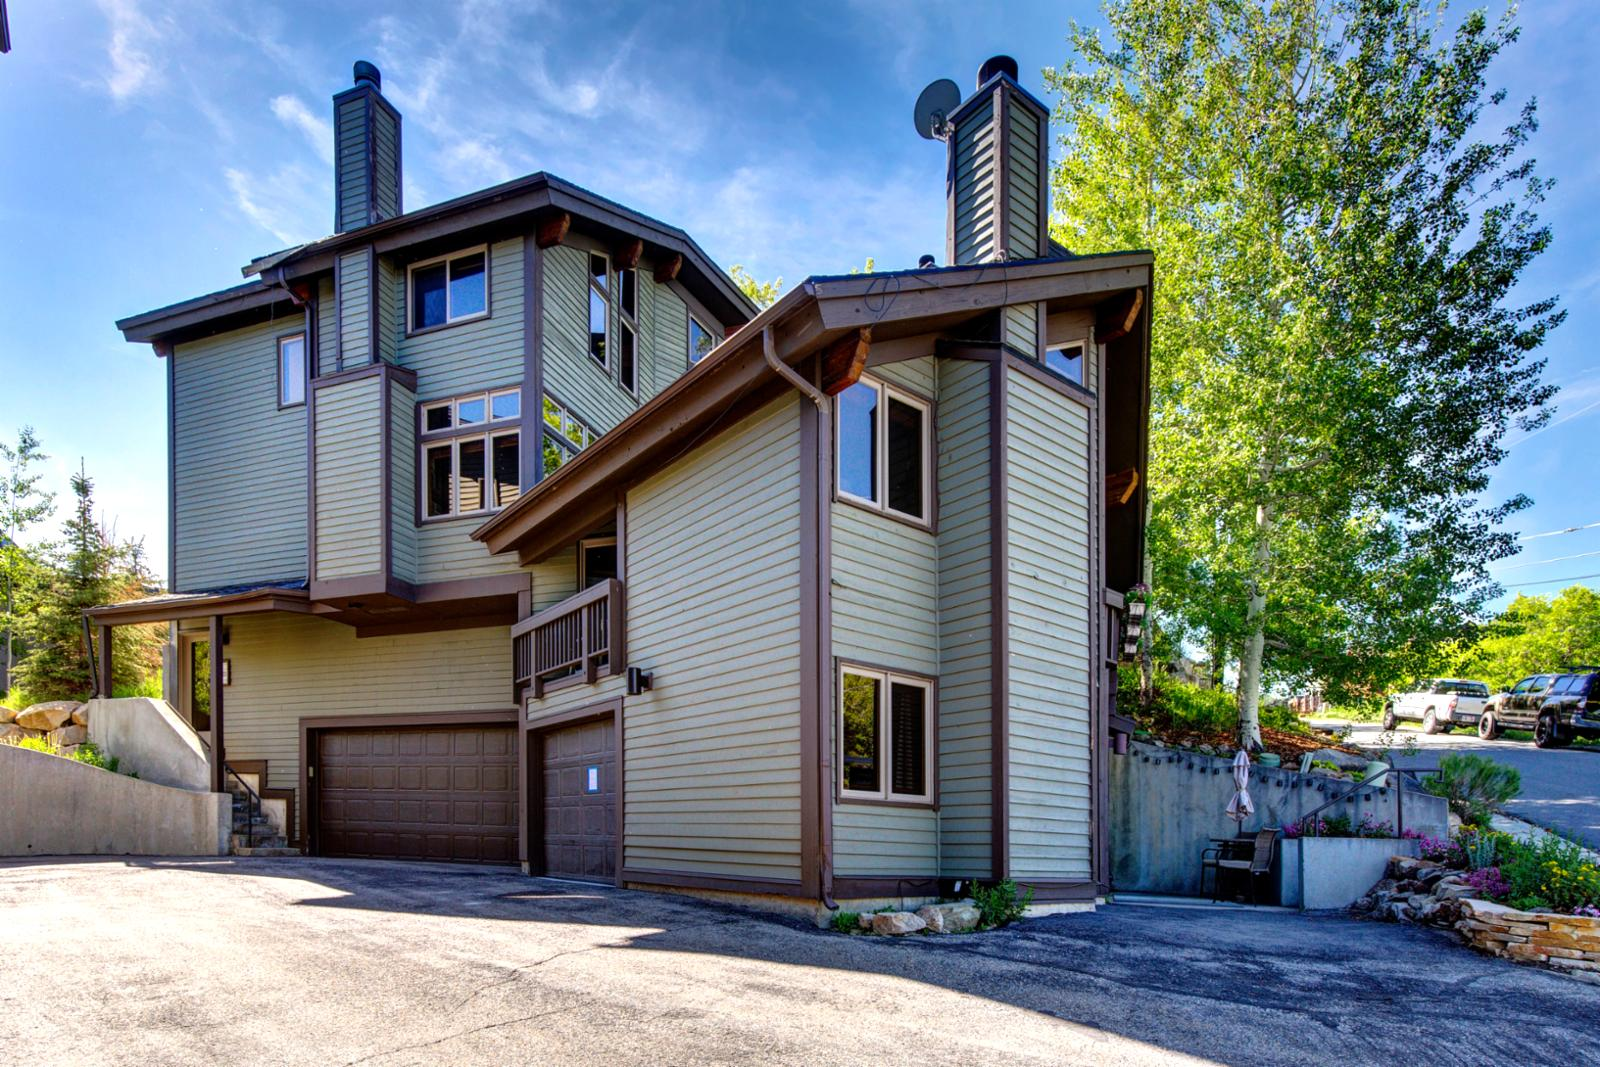 Full scope of the Ontario Townhomes